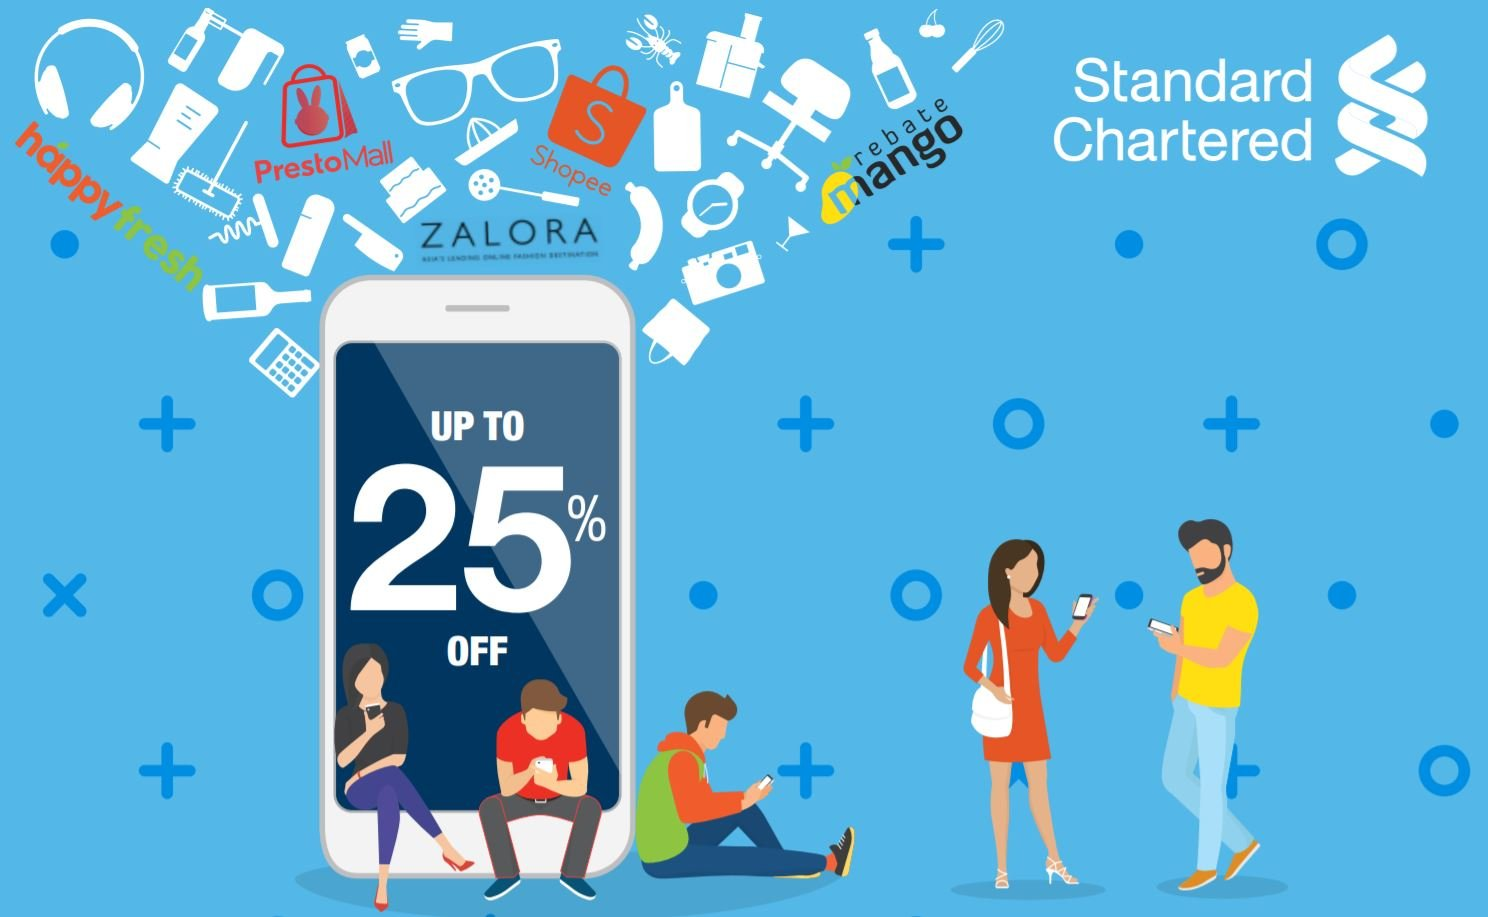 Get Promos Every Day Of The Week With Your Standard Chartered Credit Card